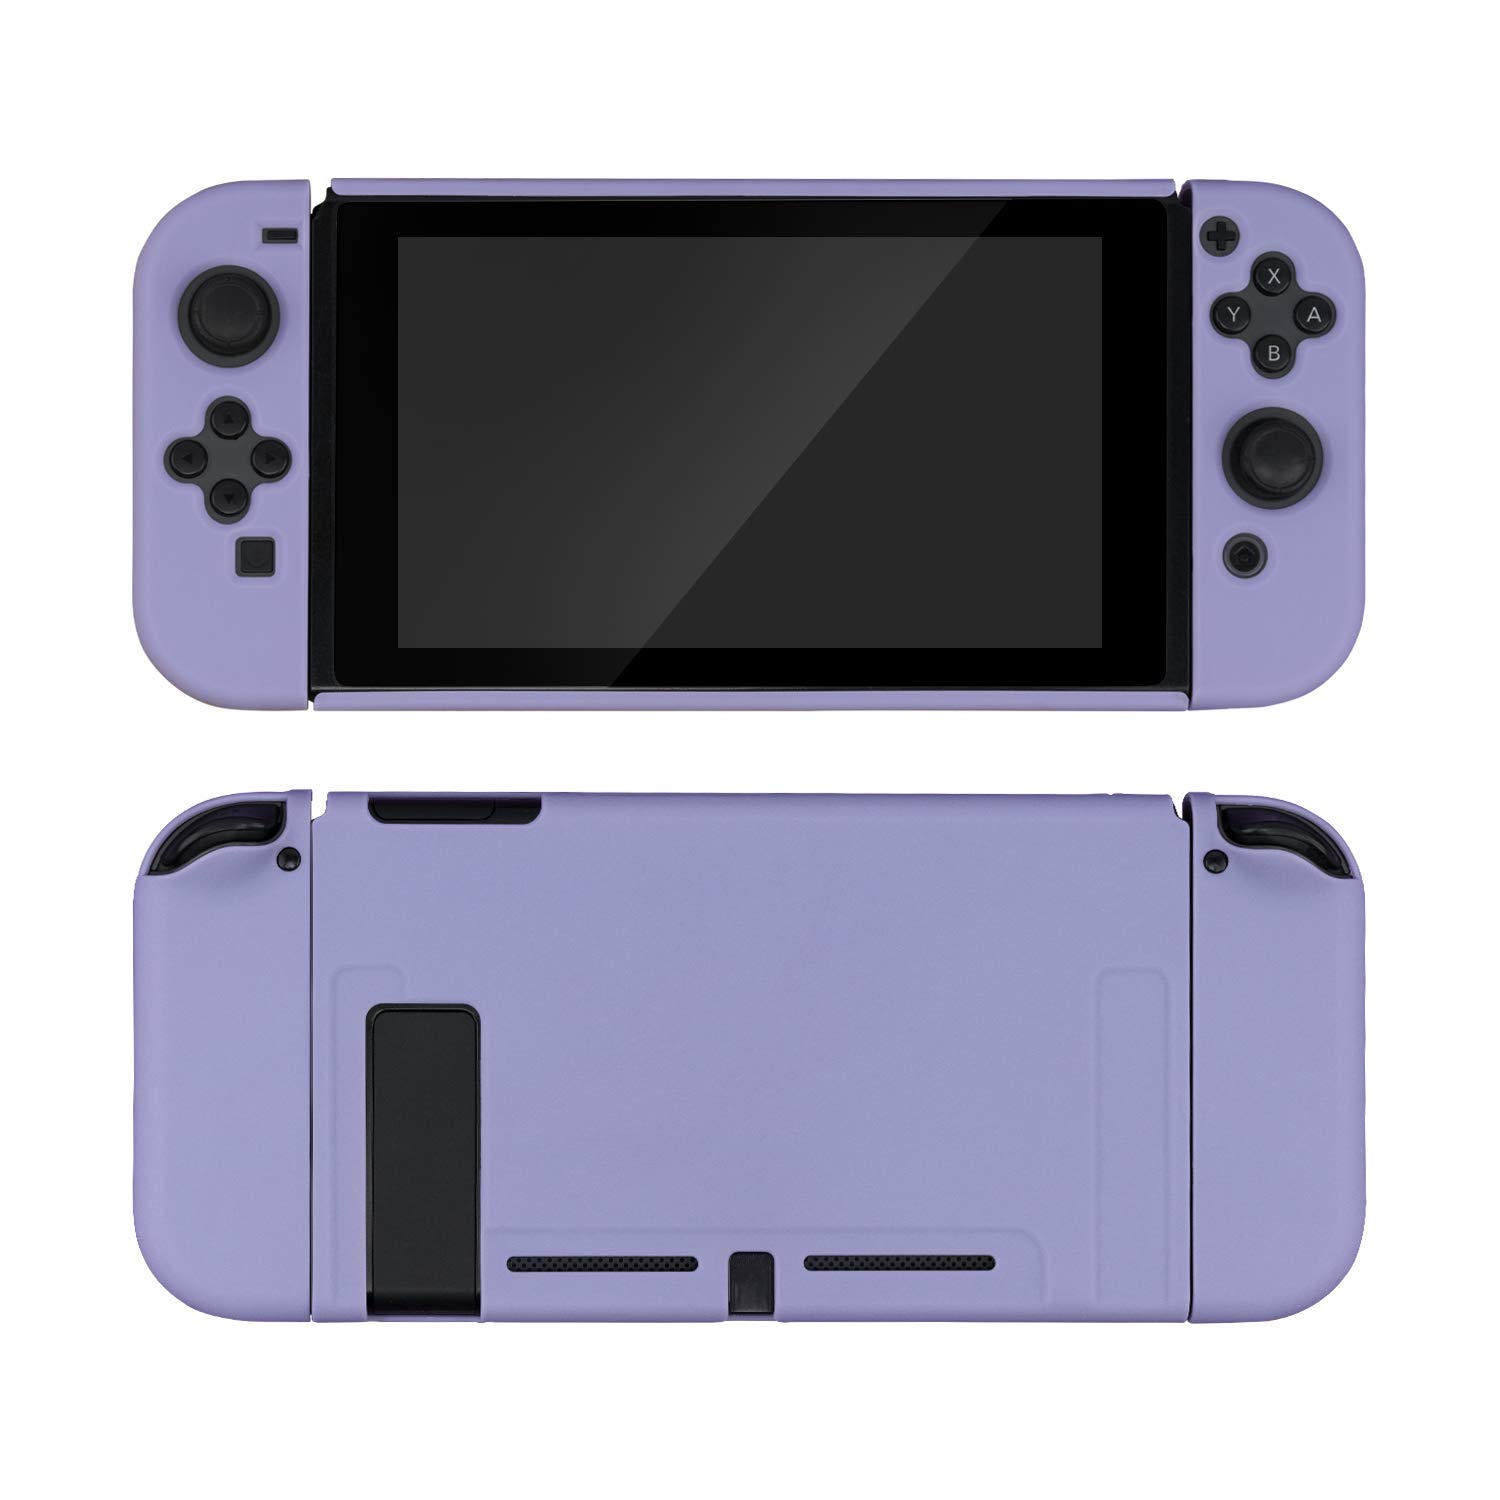 GeekShare Protective Case Slim Cover Case for Nintendo Switch and Joy Con - Shock-Absorption and Anti-Scratch (Grayish Purple)